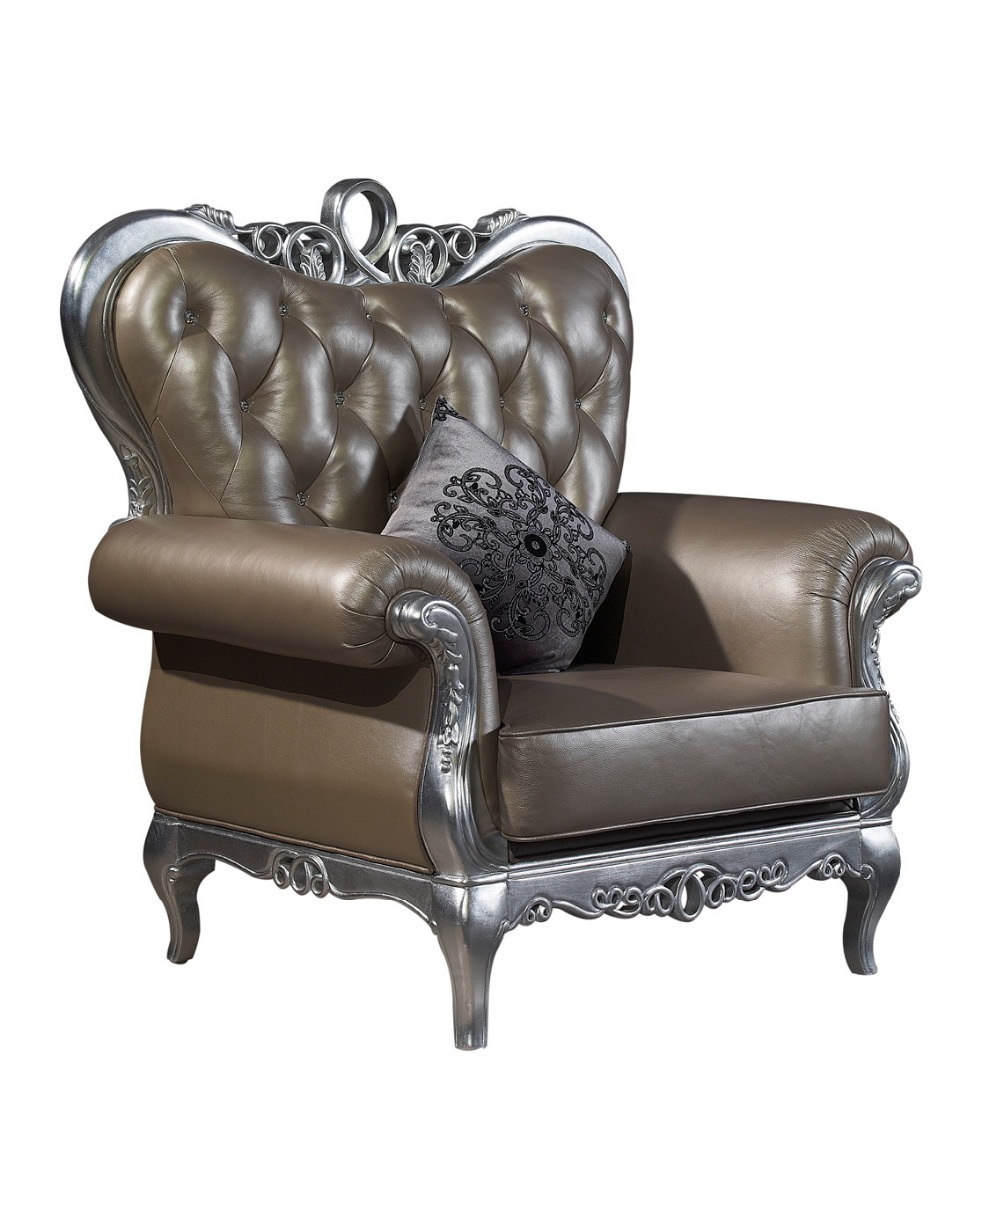 beautiful luxury italian royal style chaise/ lounge chair/recliner ...